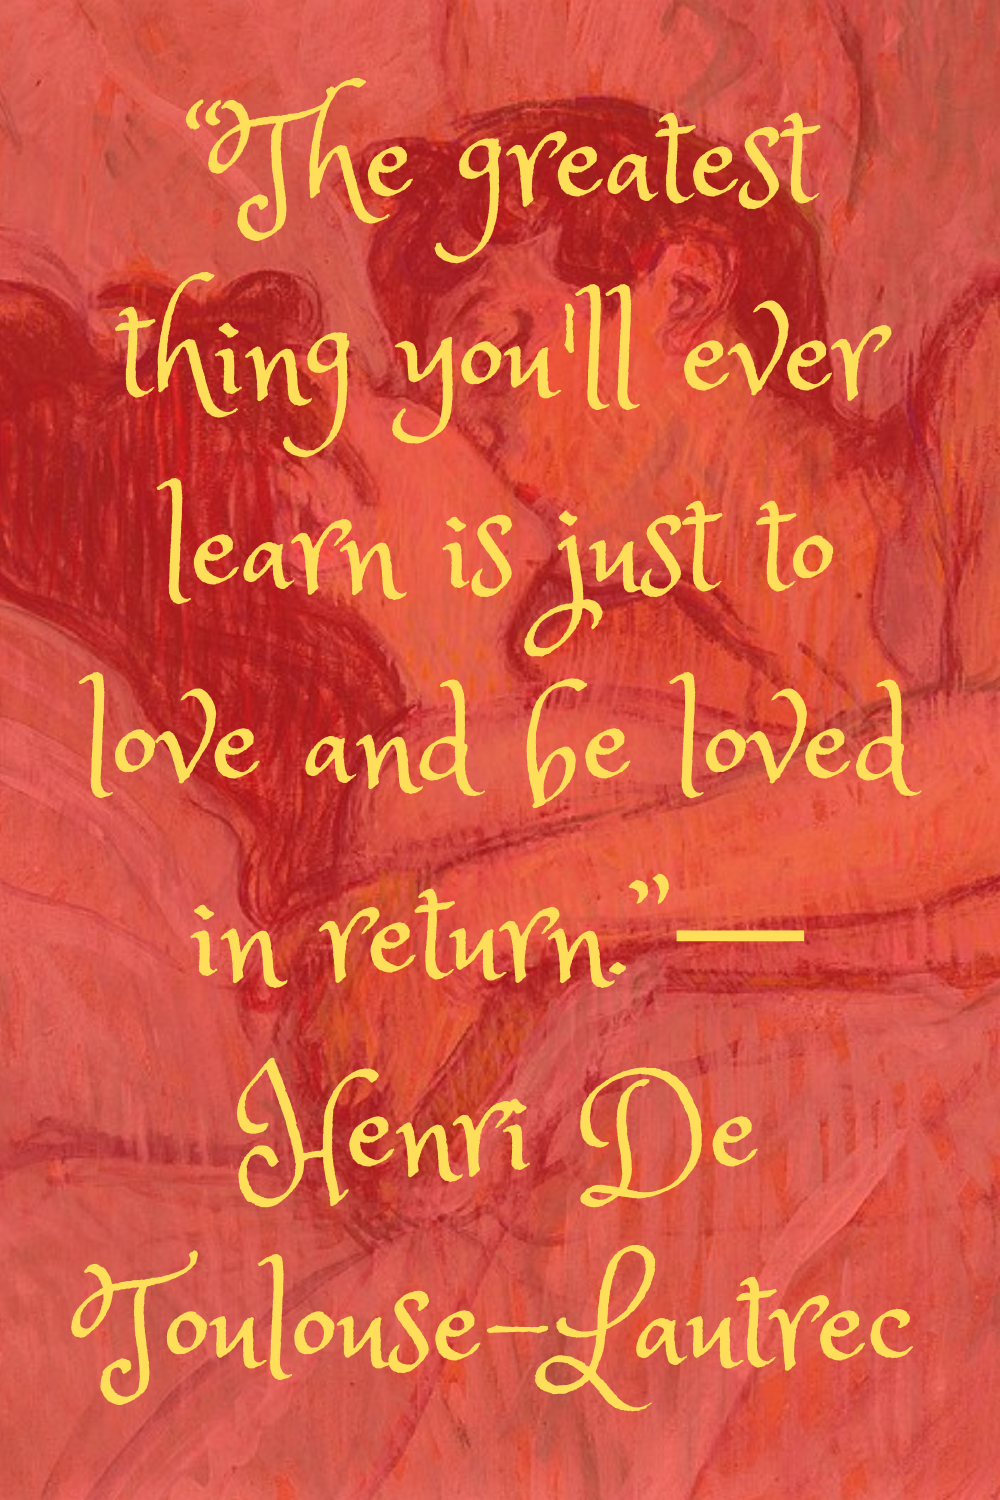 """""""The greatest thing you'll ever learn is just to love and be loved in return."""" ― Henri De Toulouse-Lautrec"""